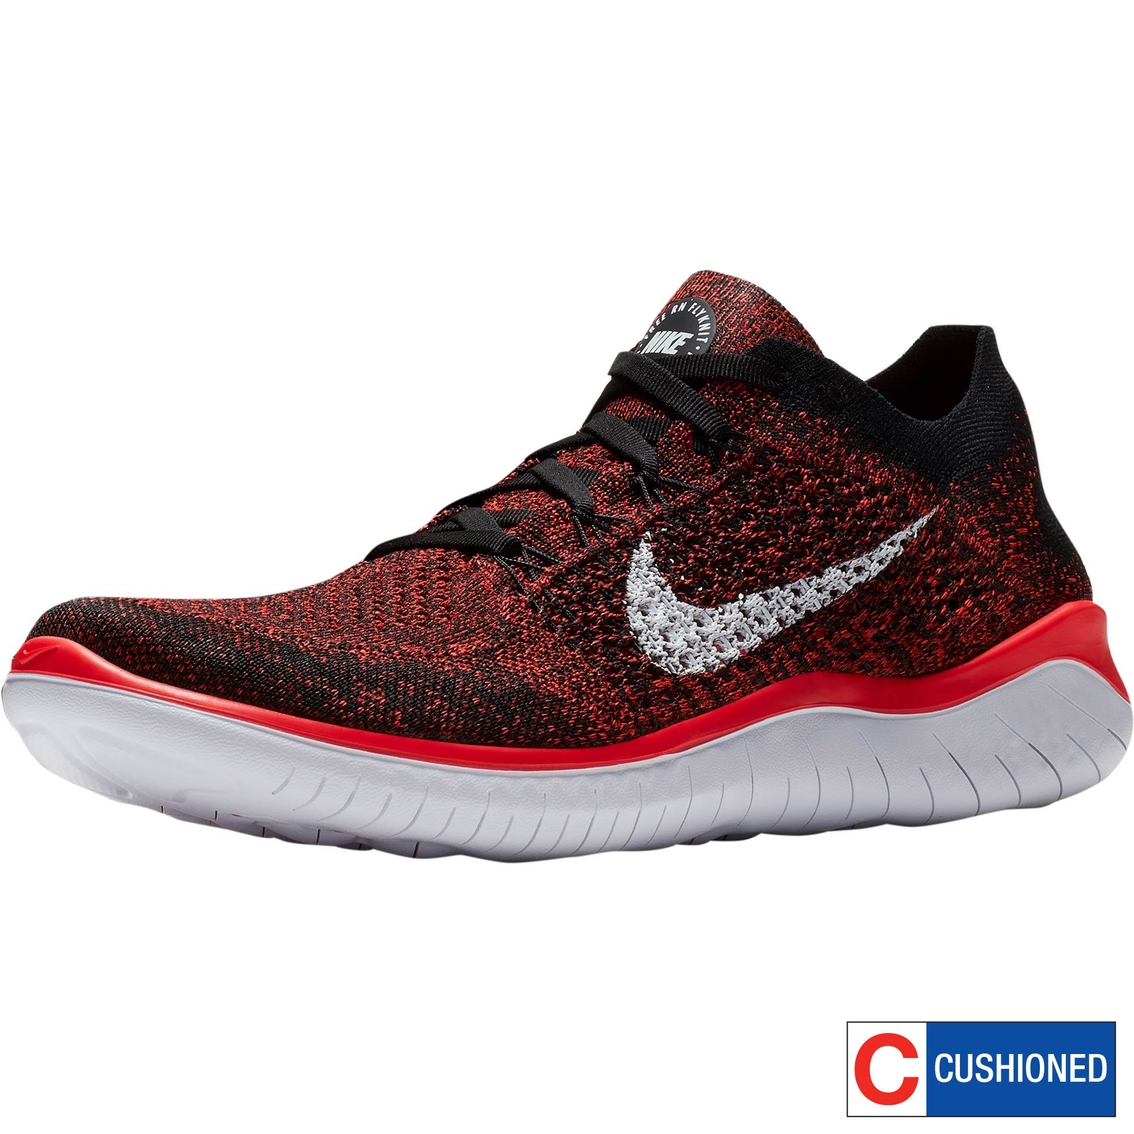 6b07cfb652e4 Nike Men s Free Rn Flyknit 2018 Running Shoes